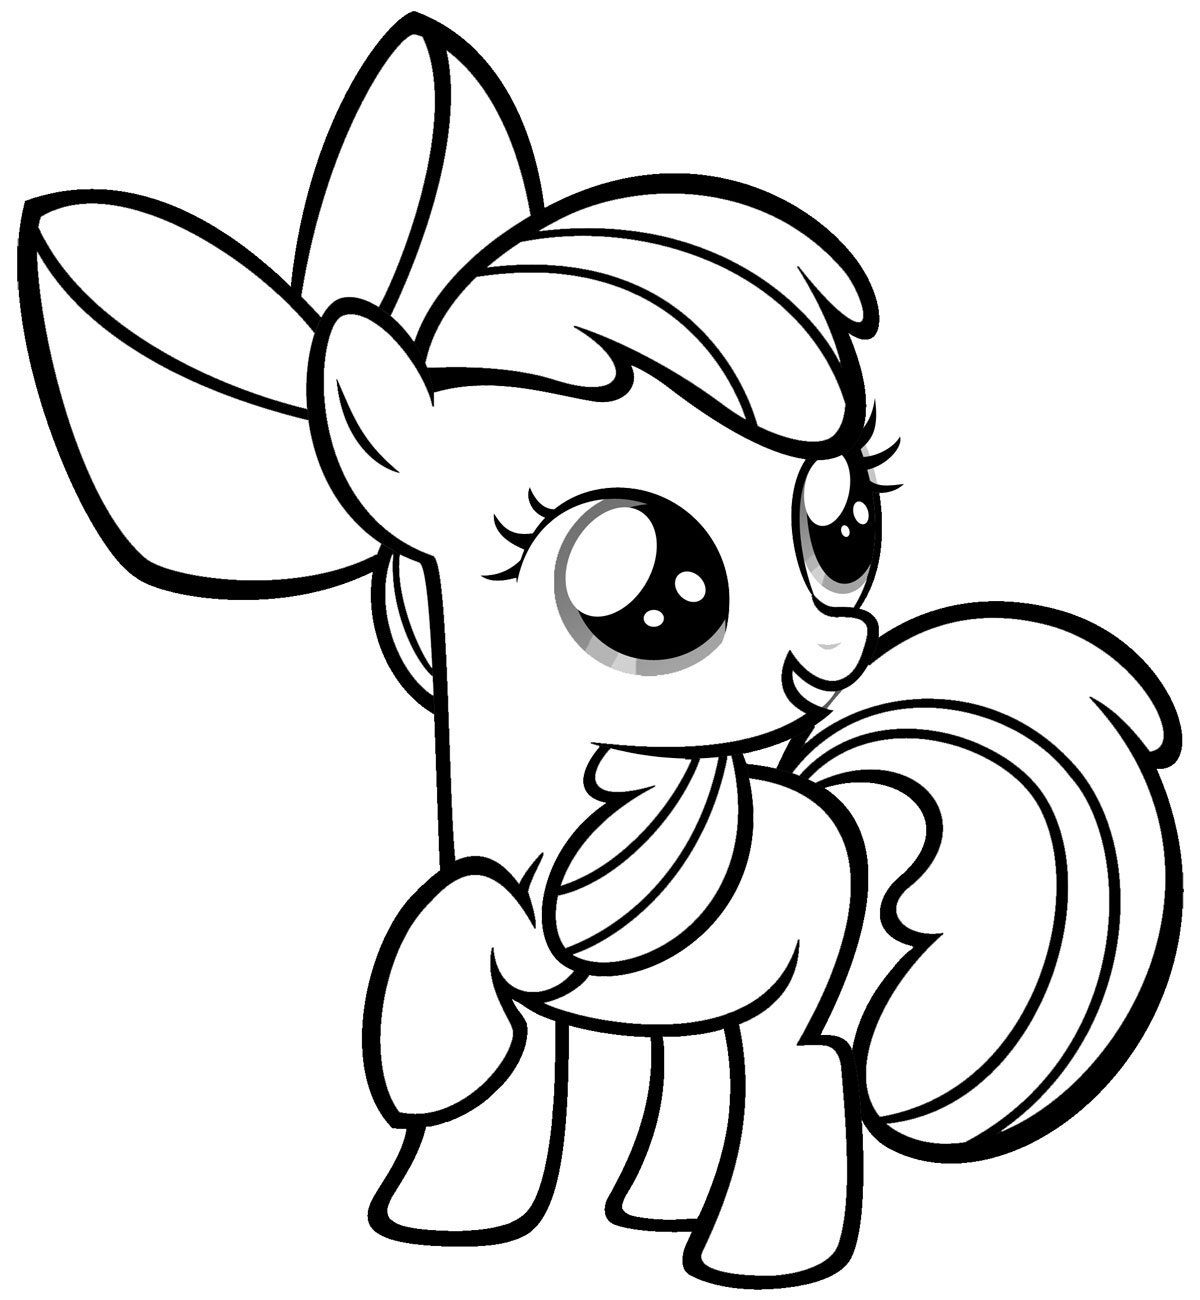 my little pony print and colour my little pony coloring pages print and colorcom pony and my colour little print